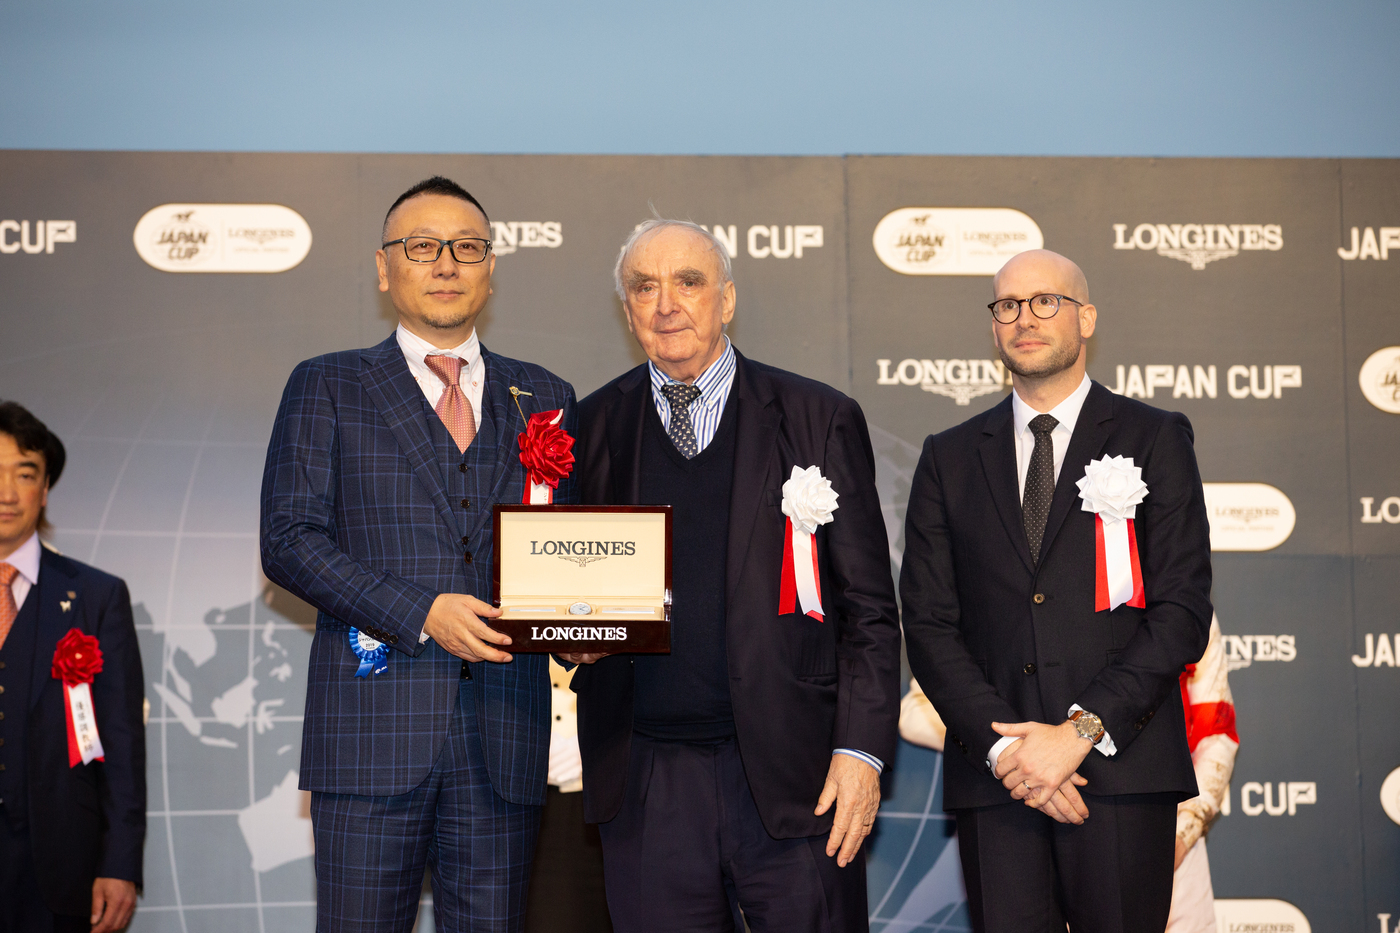 Longines Flat Racing Event: Suave Richard galloped to victory in the 2019 edition of the Japan Cup in association with Longines 4